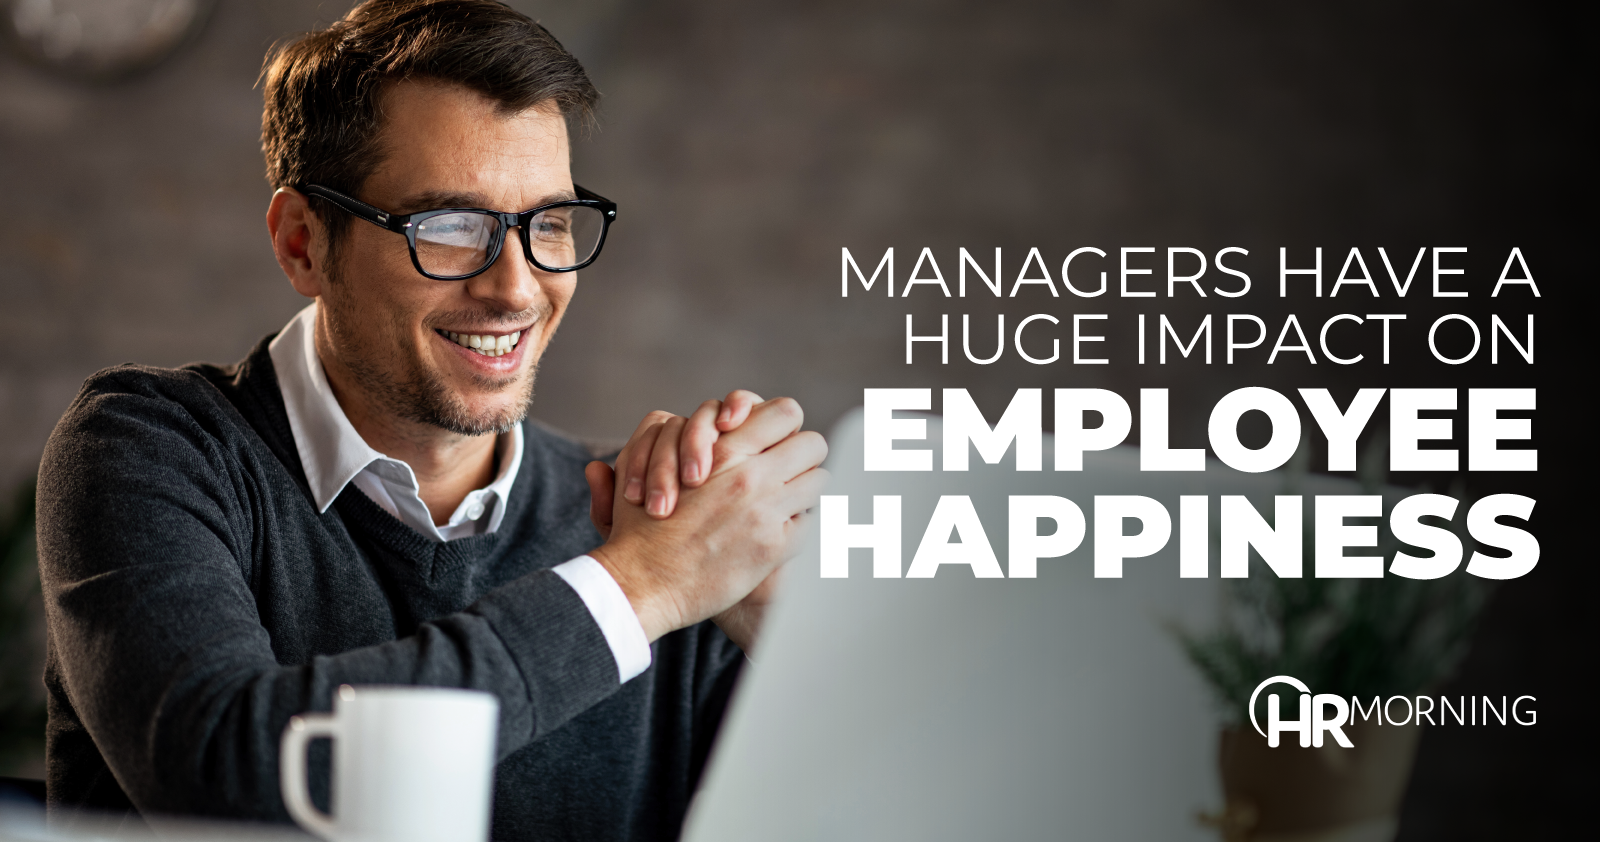 Managers Have A Huge Impact On Employee Happiness